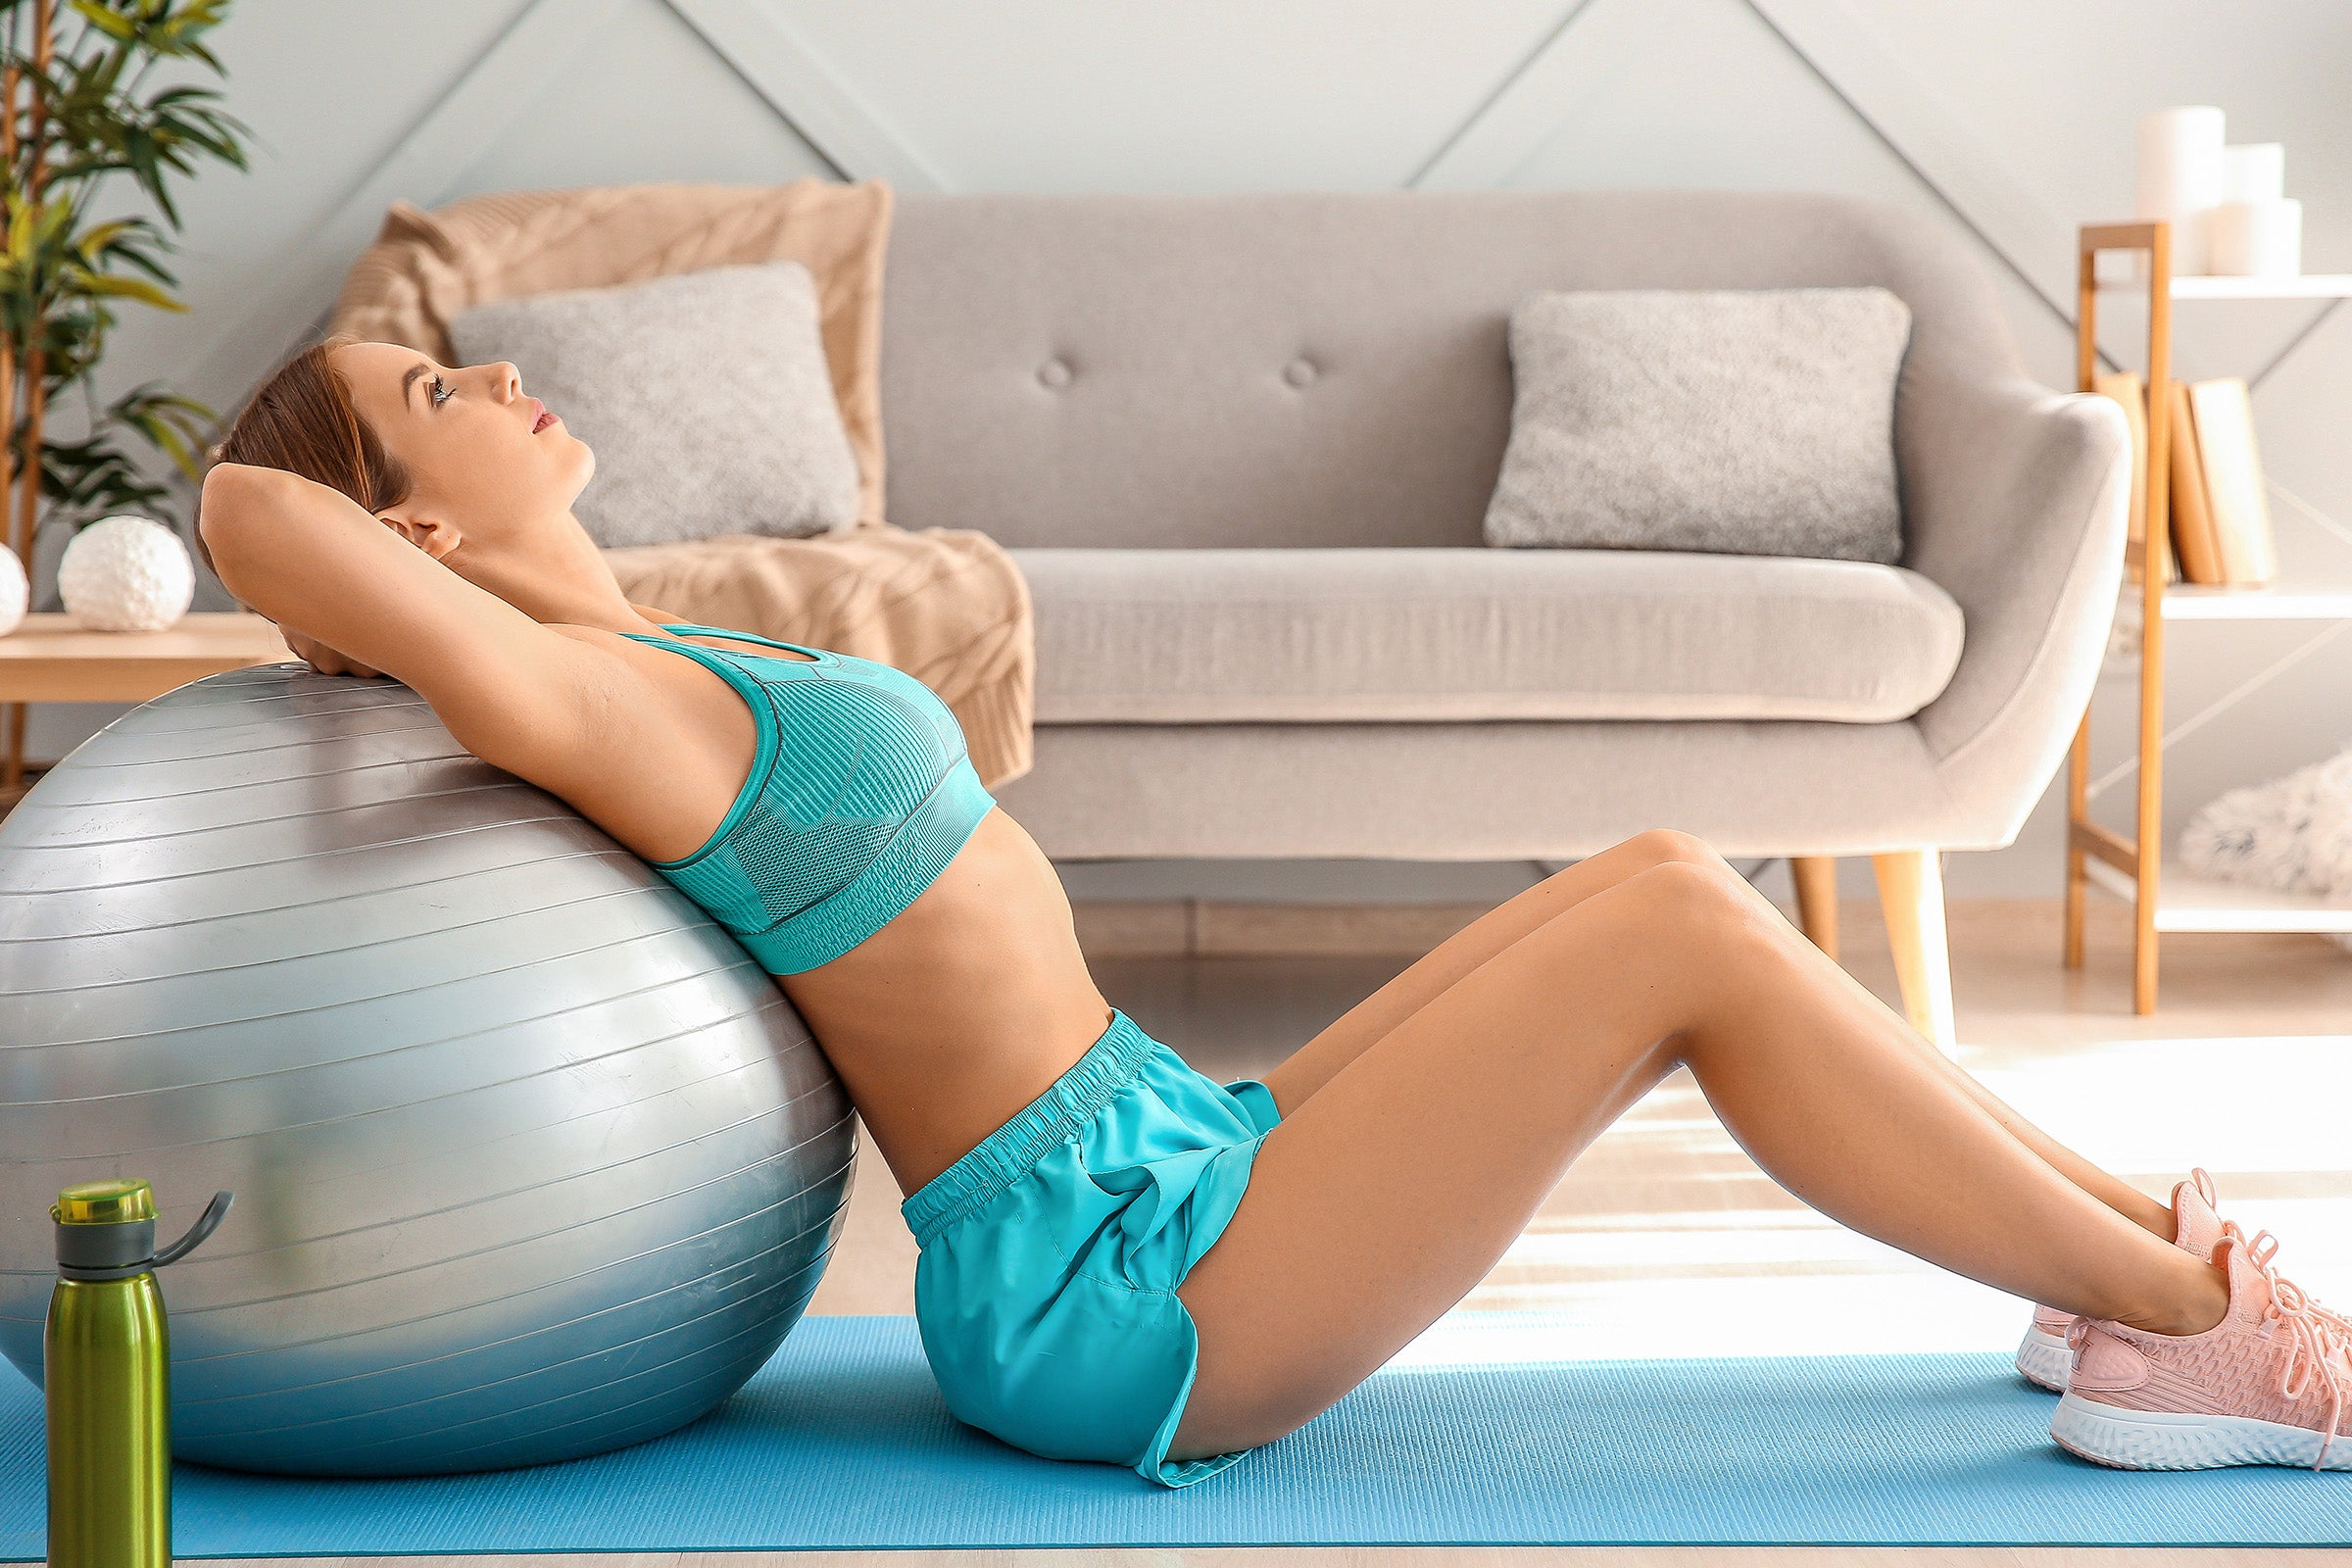 Change Your Workout Routine Regularly to Prevent Boredom